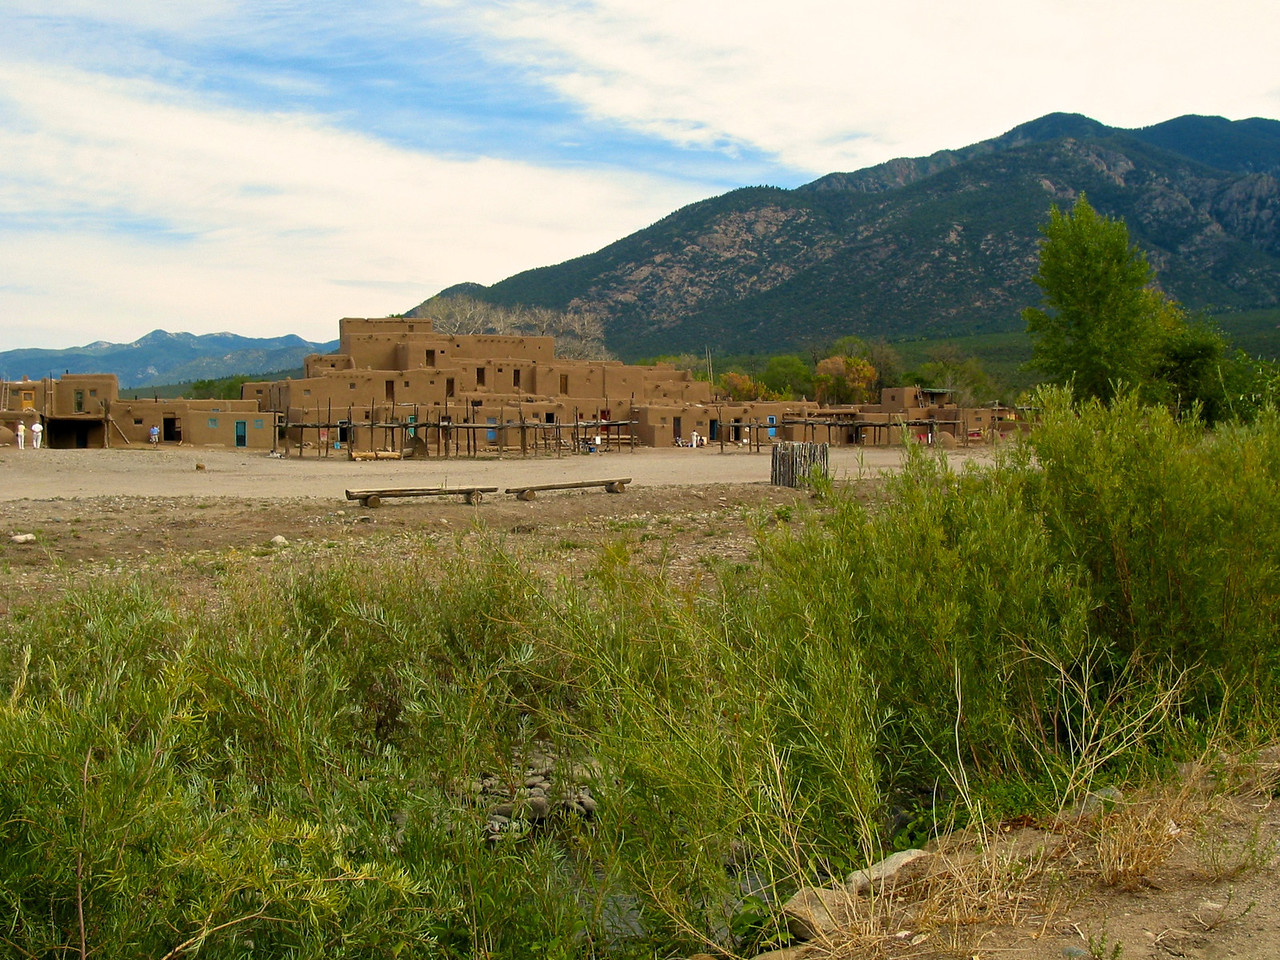 Taos Pueblo's most prominent architectural feature is a multi-storied residential complex of reddish-brown adobe divided into two parts by the Rio Pueblo. According to the Pueblo's Web site, it was probably built between 1000 and 1450 A.D. It was designated a National Historic Landmark on October 9, 1960, and in 1992 became a World Heritage Site. As of 2006, about 150 people live in it full-time.